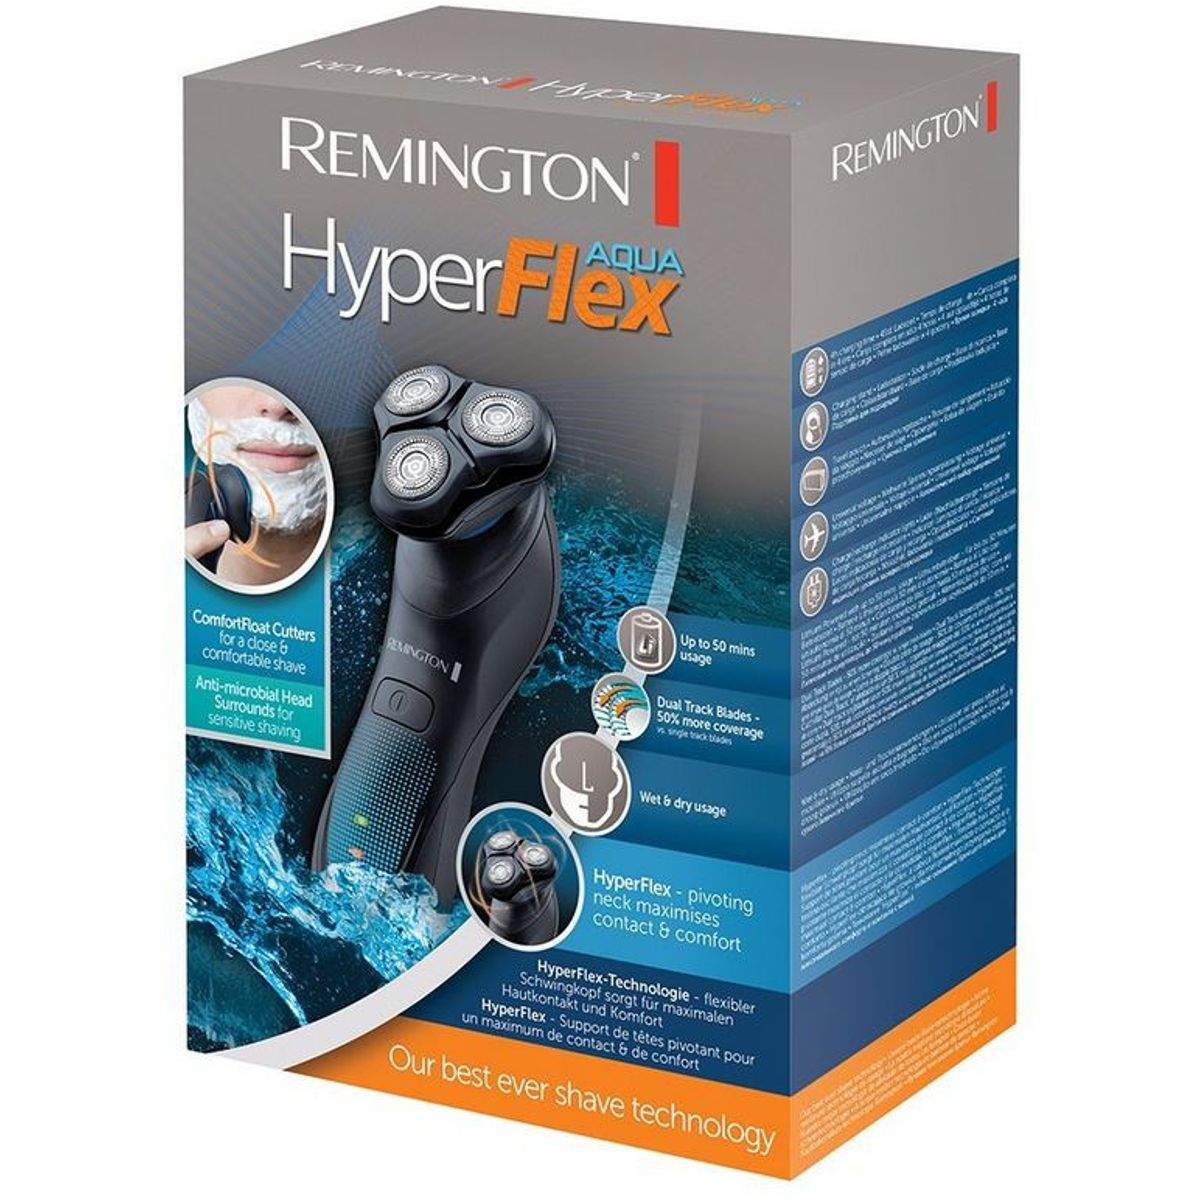 Remington Rotationsrasierer HyperFlex Aqua XR1430